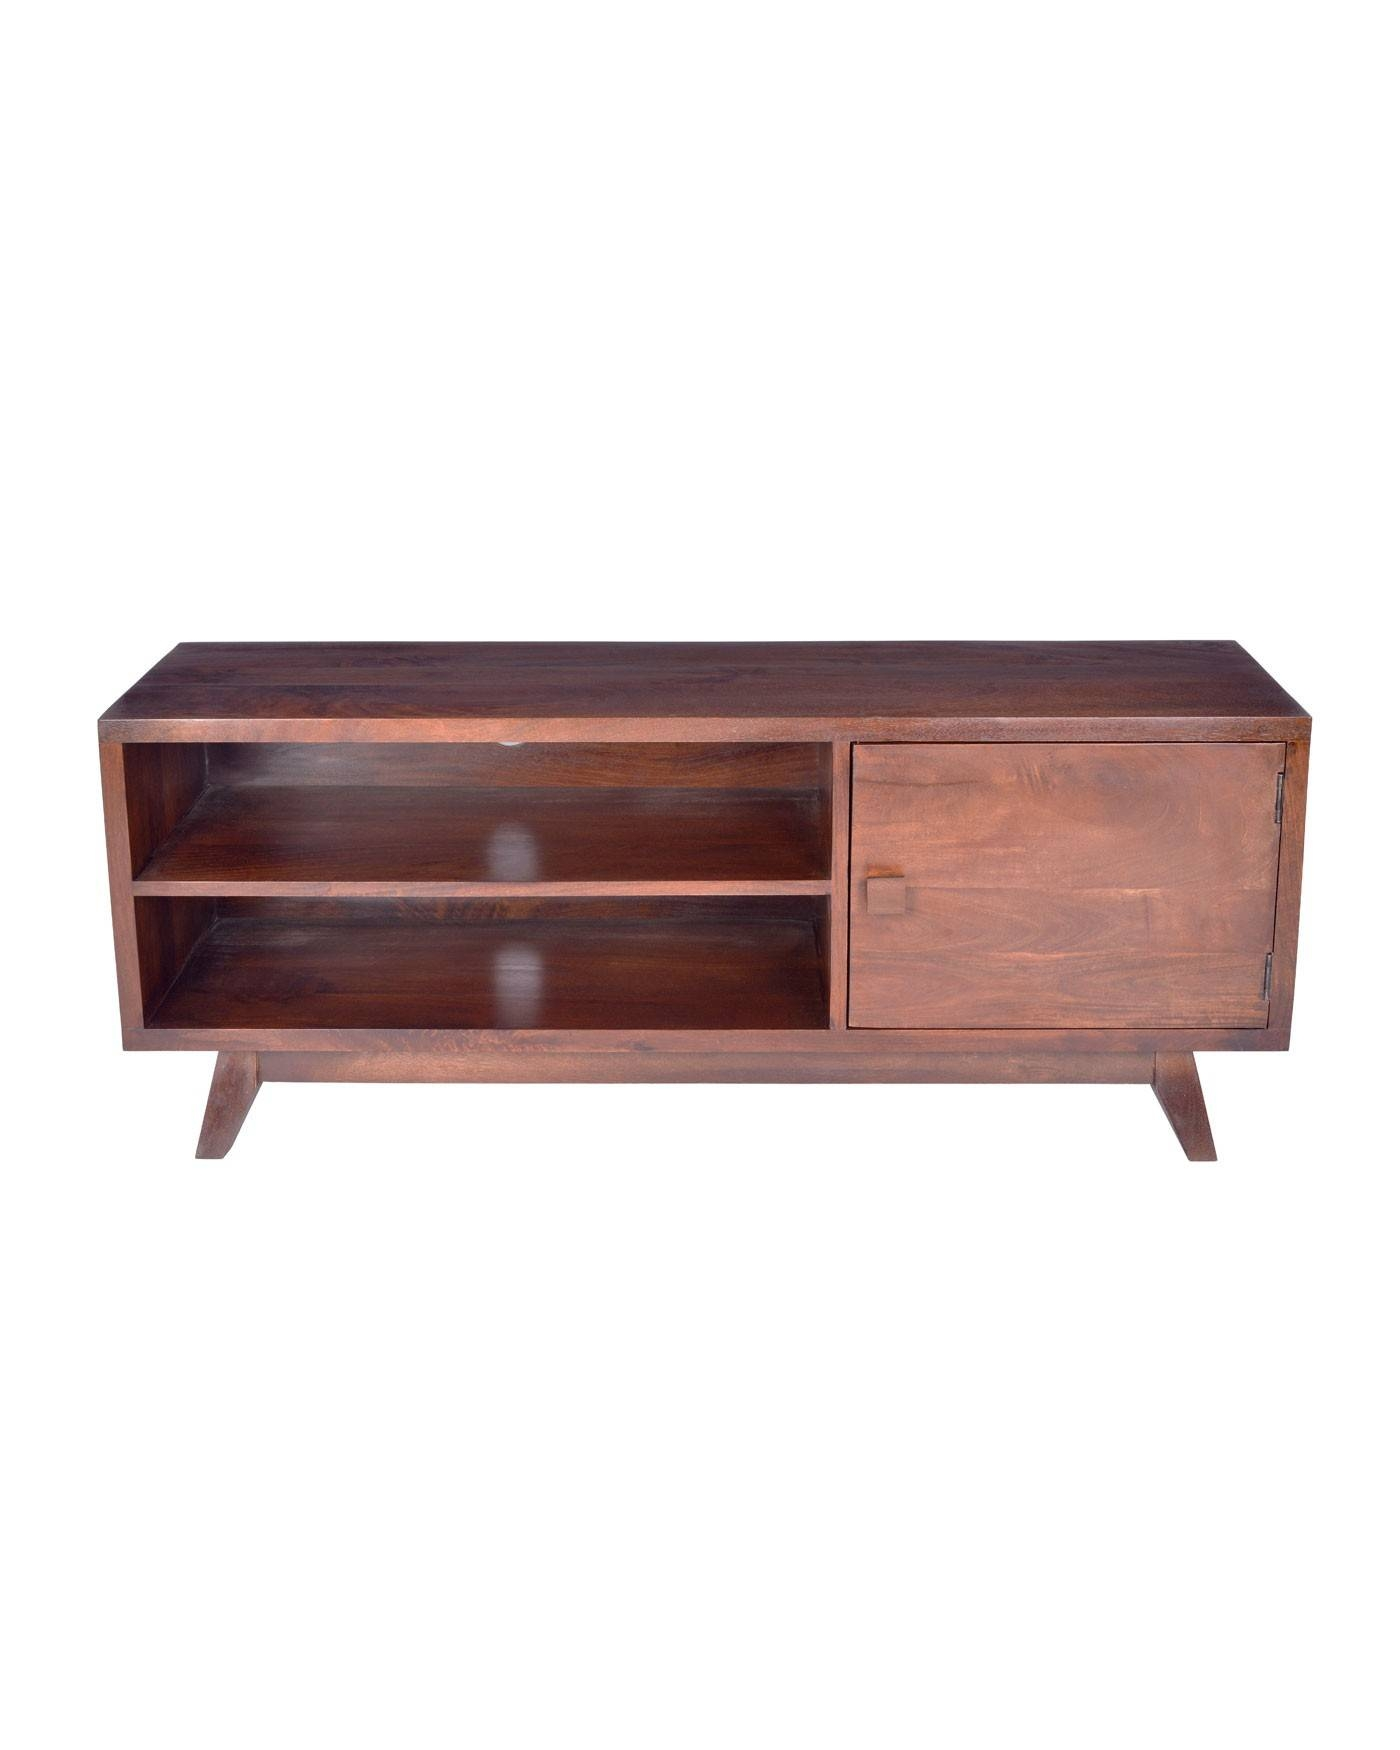 Dark Wood Tv Stand With Shelf Retro Design 100% Solid Wood intended for Dark Wood Tv Stands (Image 8 of 15)